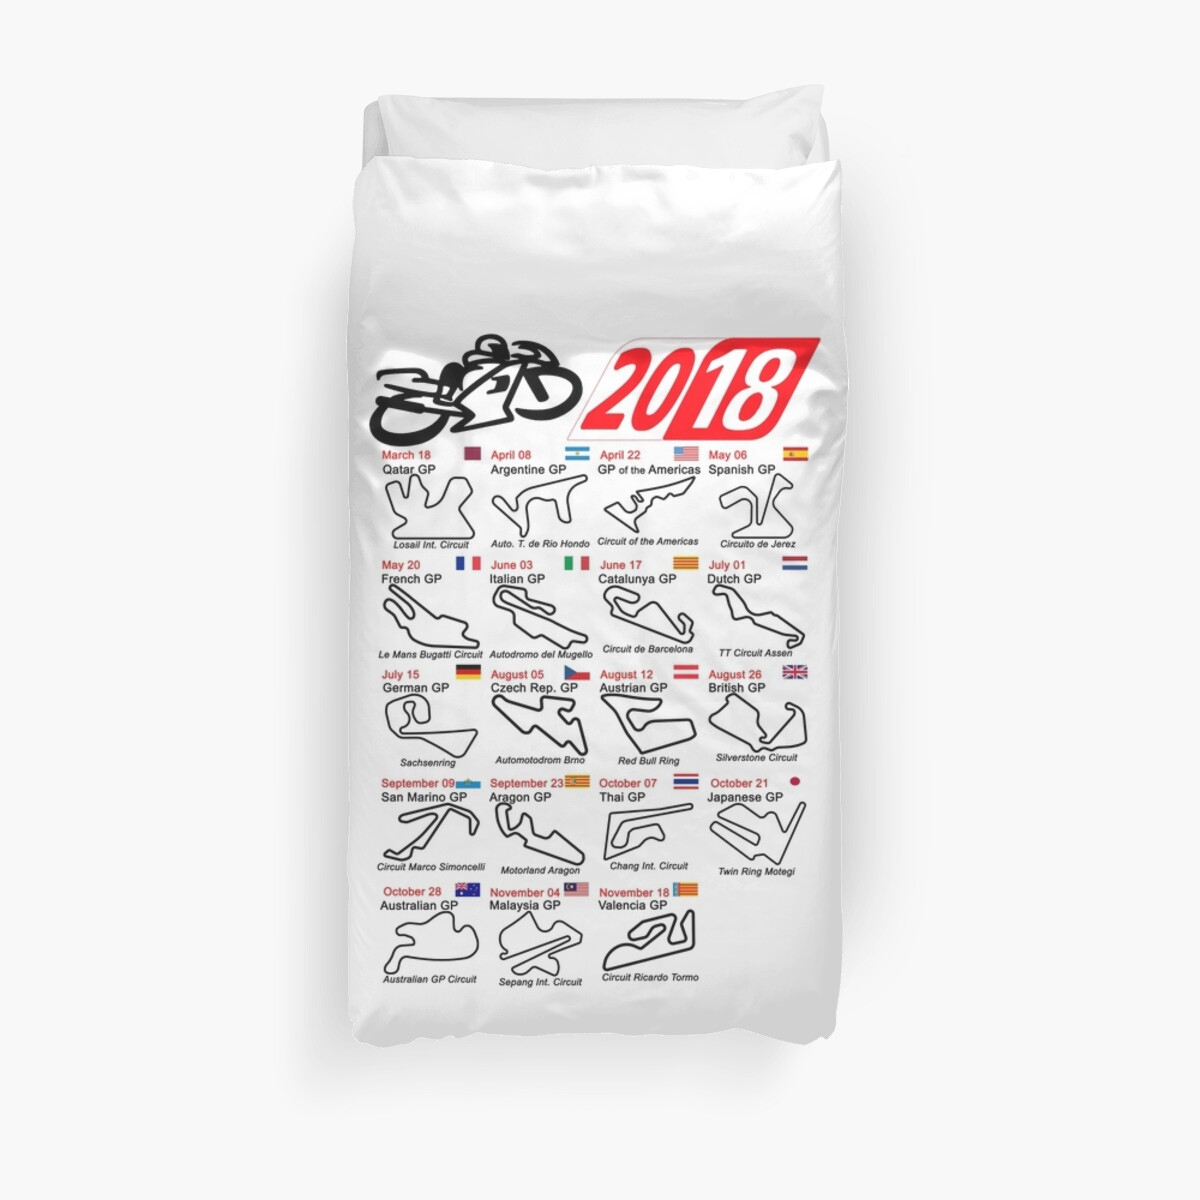 Calendar 2018 Motogp Named Circuits White Duvet Covers By